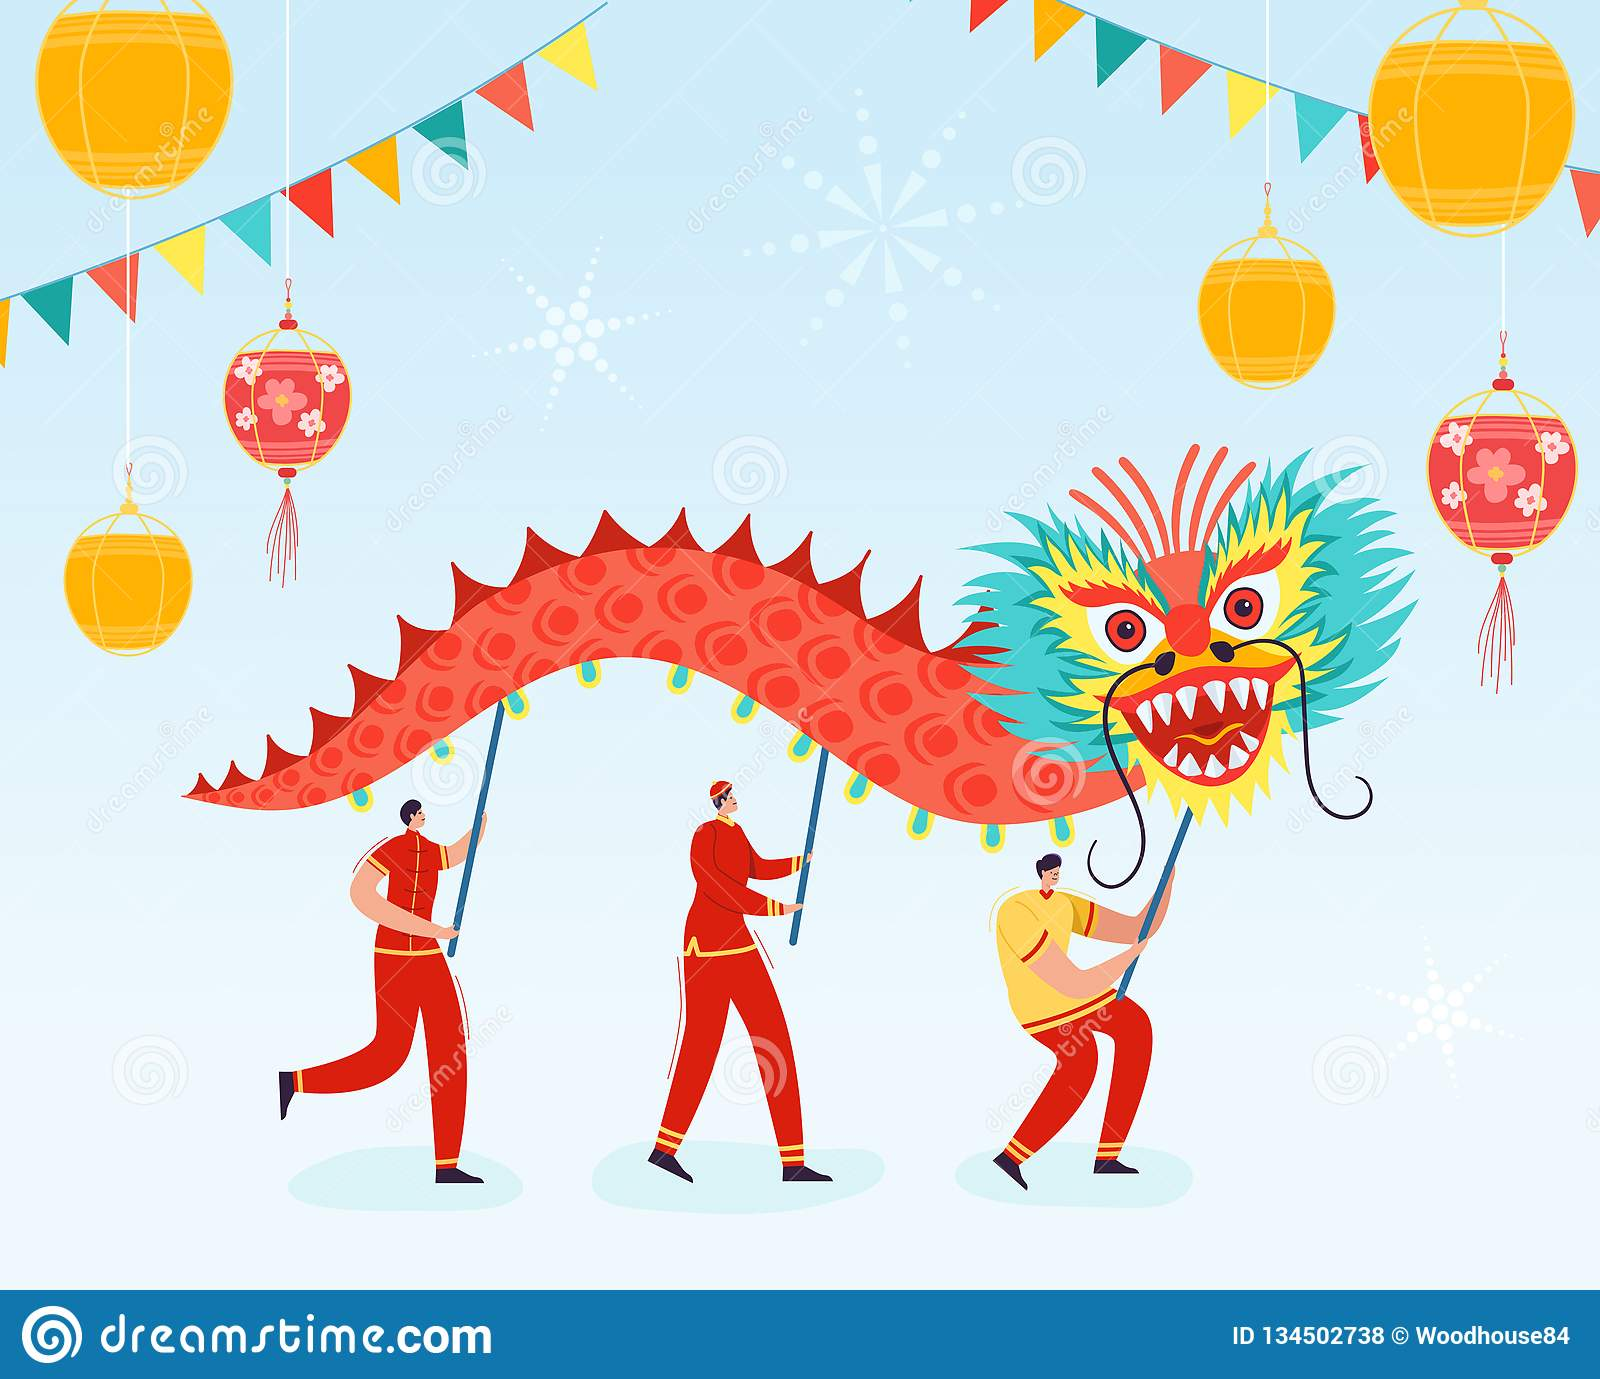 54306279a Chinese Lunar New Year People holding Dragon, Lion dance characters wearing  china traditional costume on parade or carnival. Vector illustration